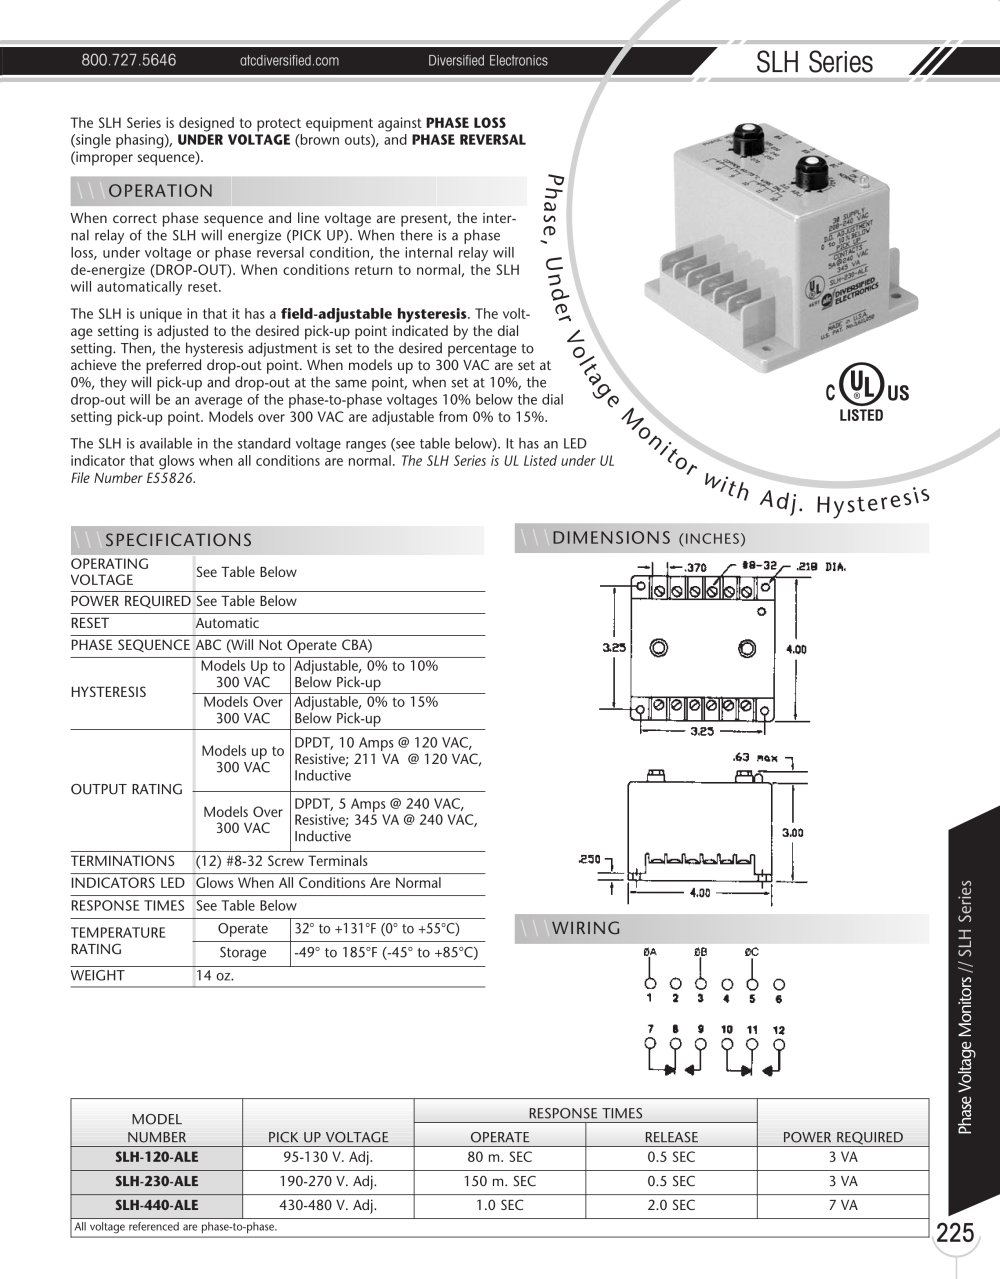 Catalogue - Marsh Bellofram Diversified Electronics Division SLH ...